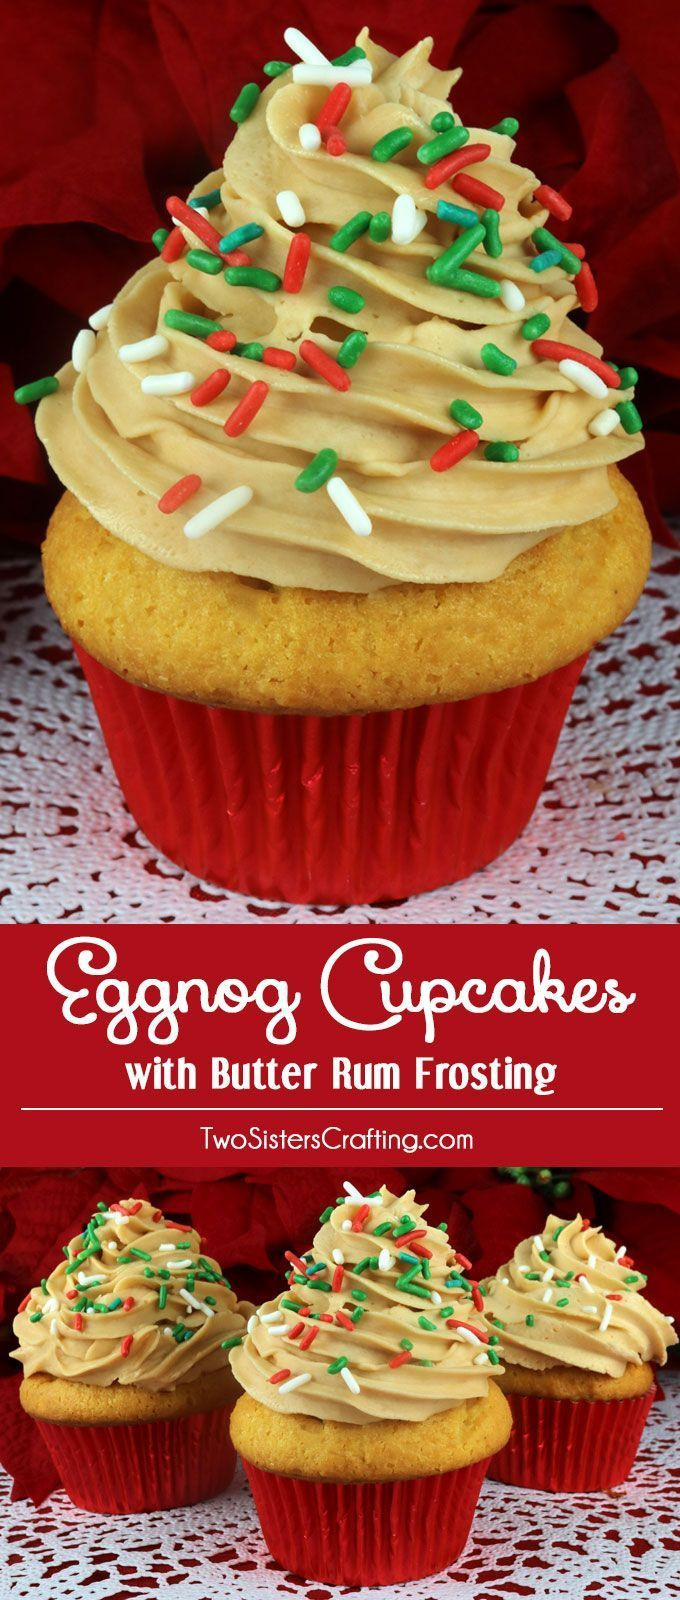 Eggnog Cupcakes with Butter Rum Frosting - a beautiful Christmas Cupcake for your holiday parties. Each bite is like a sip of spiked Eggnog. Christmas desserts never looked so good. Pin these delicious Christmas Treats for later and follow us for more great Christmas Food ideas.